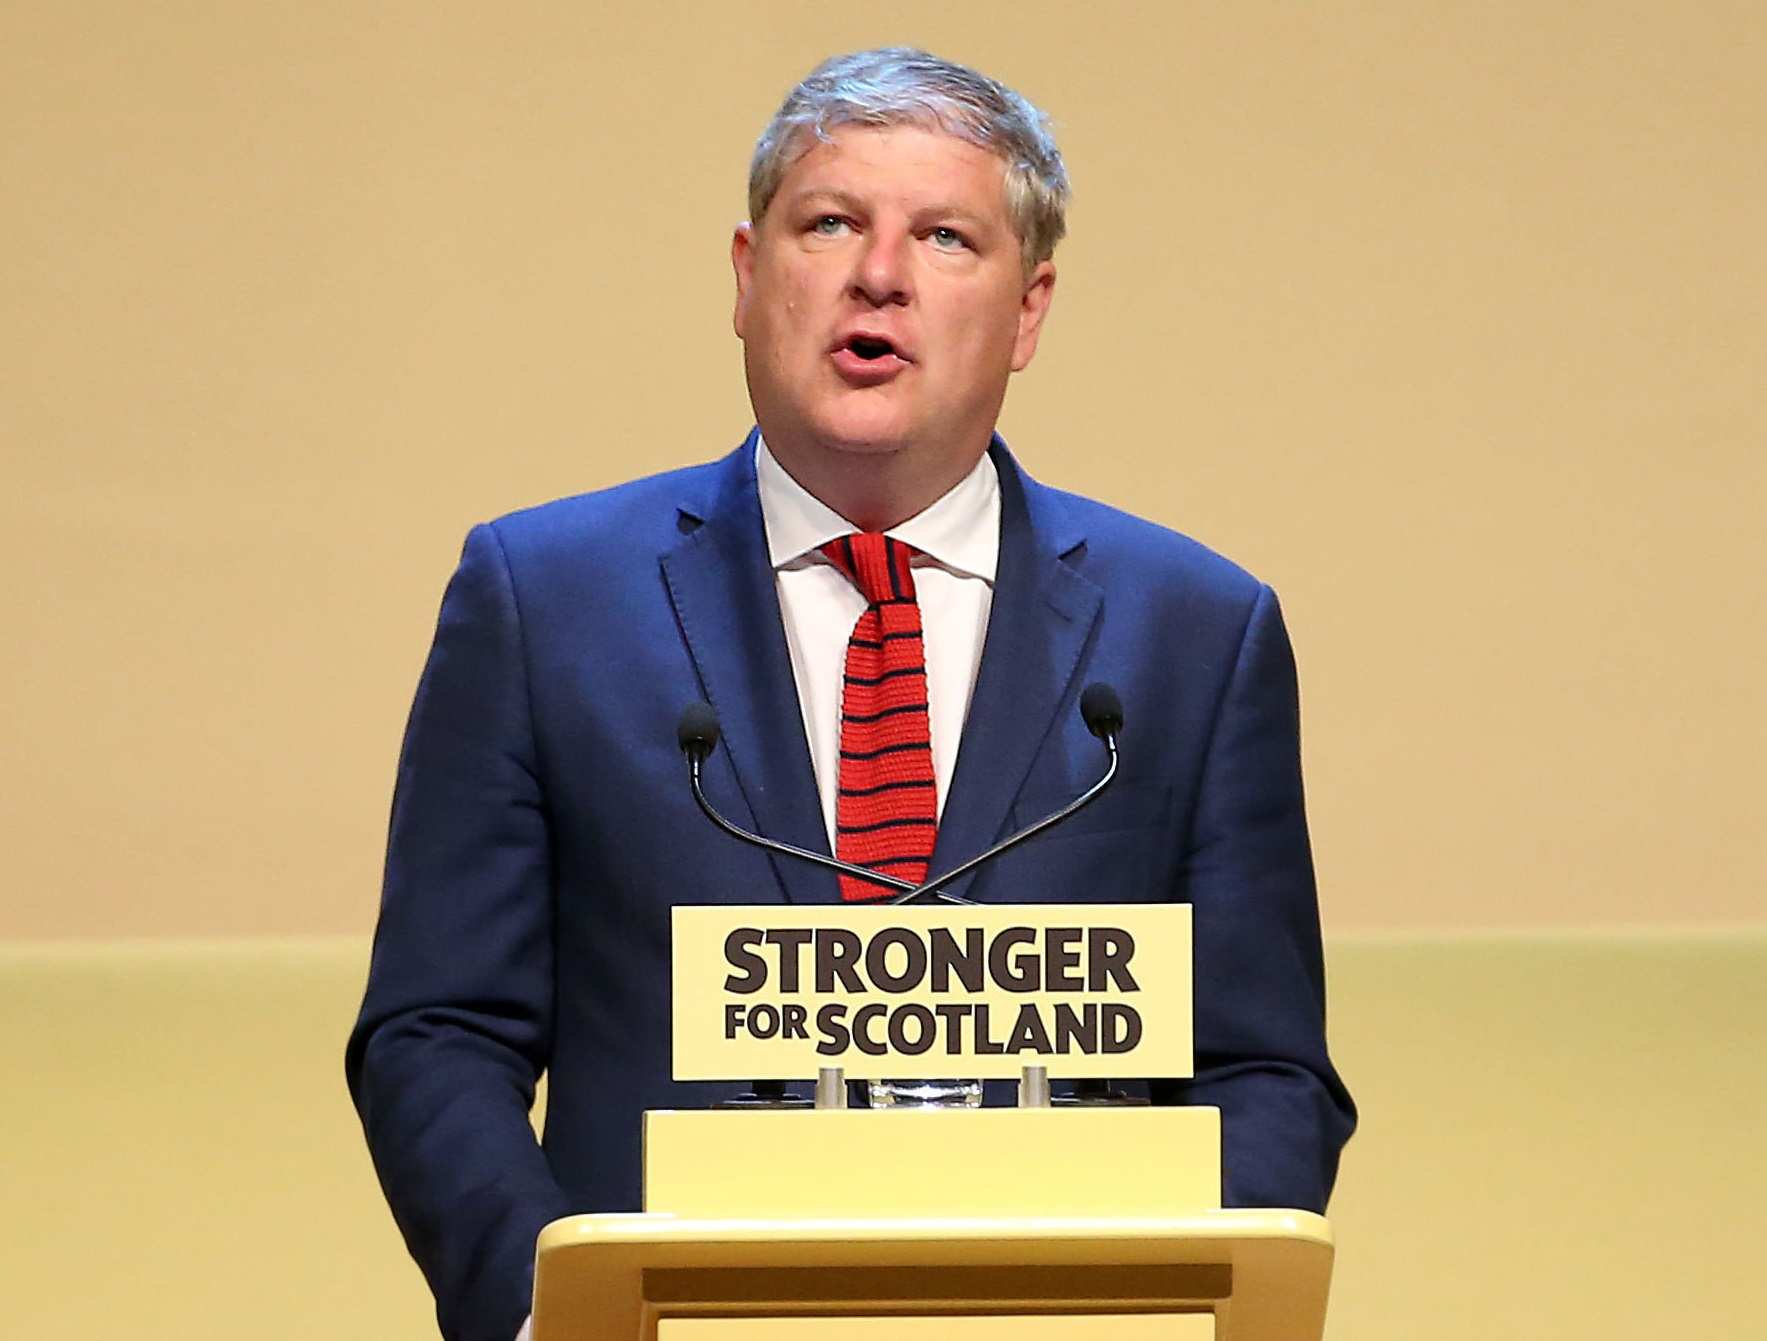 By stepping down, Angus Roberston has cleared the way for Nicola Sturgeon to revamp her leadership team